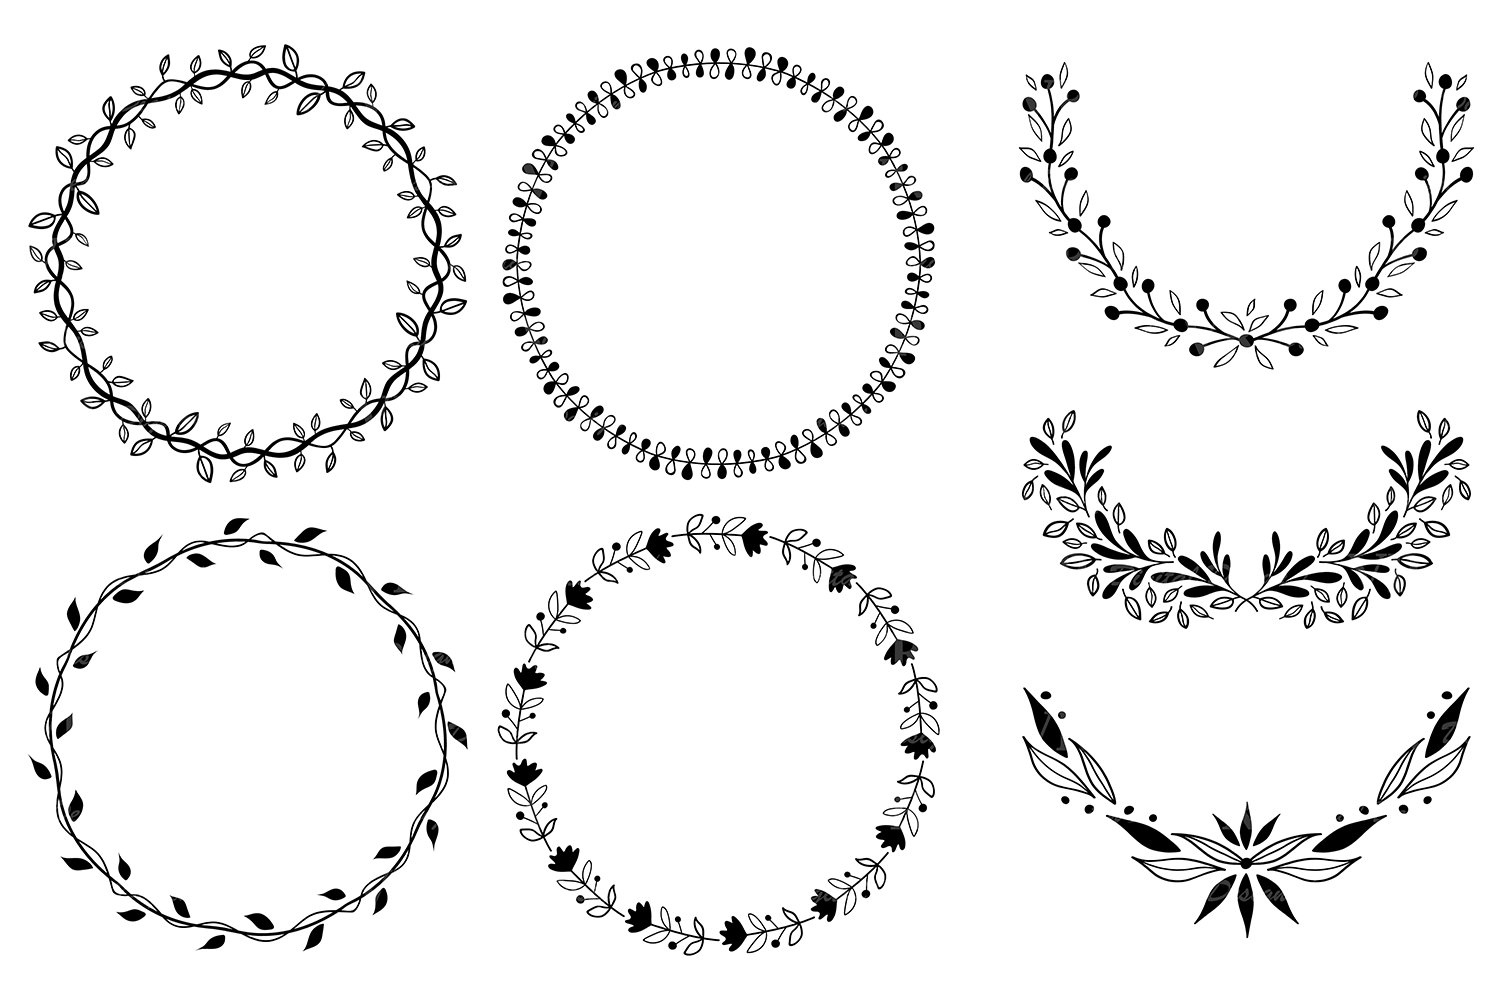 Hand drawn wreaths, laurels and design elements vector.